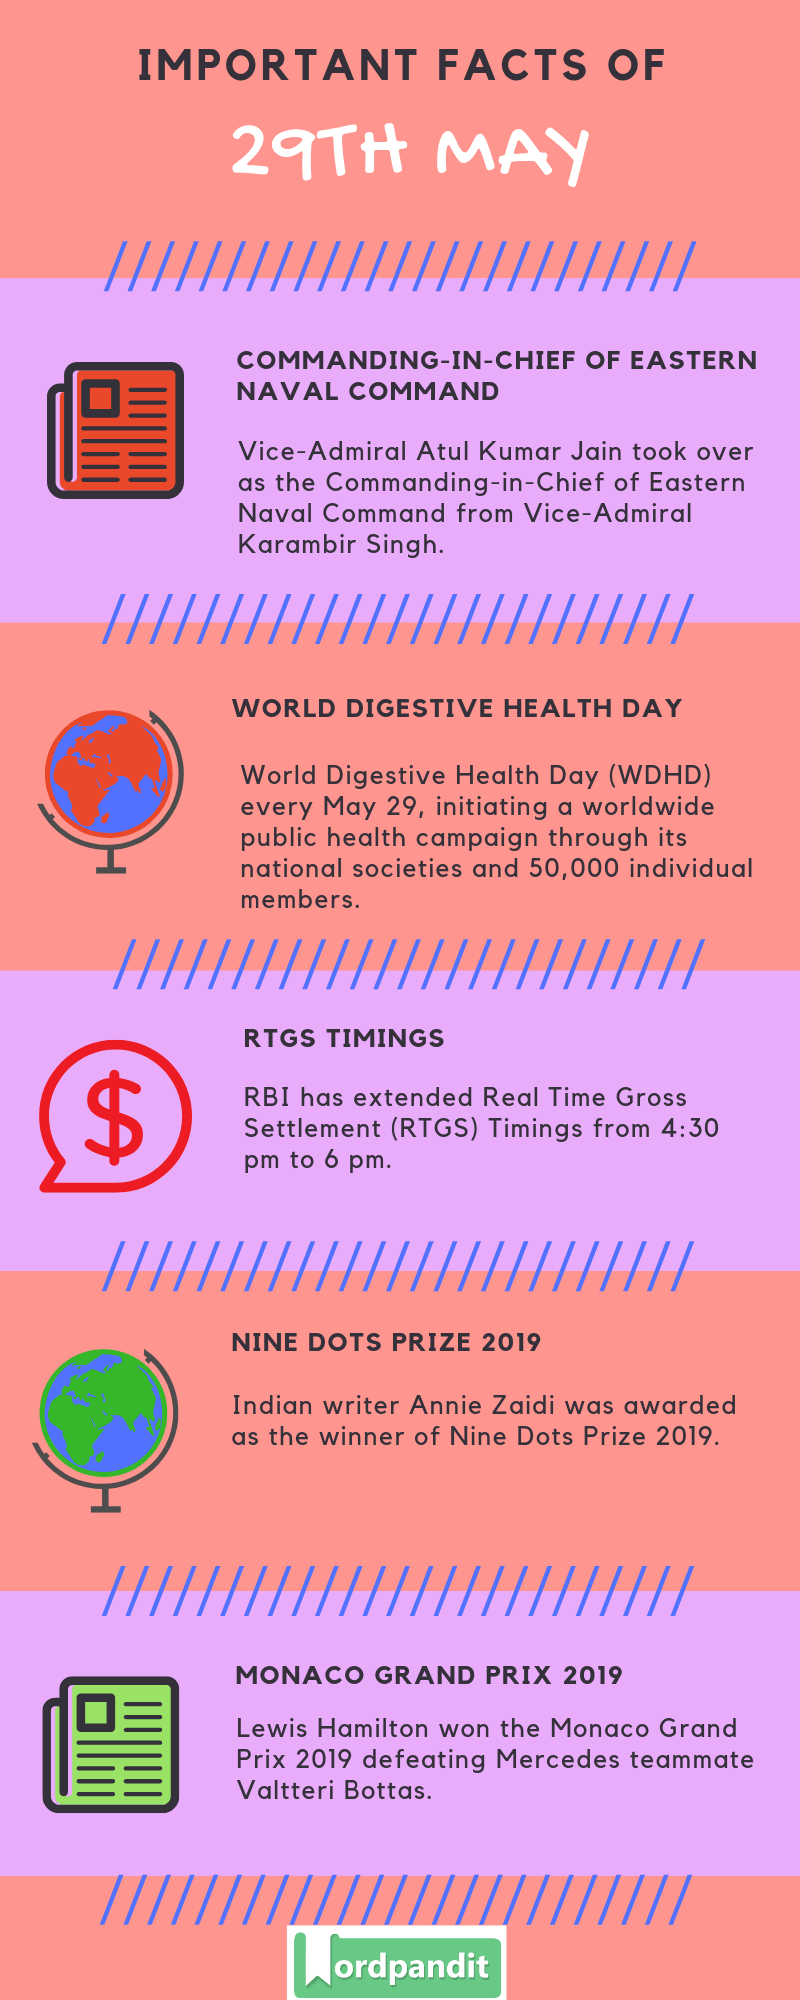 Daily Current Affairs 29 May 2019 Current Affairs Quiz 29 May 2019 Current Affairs Infographic